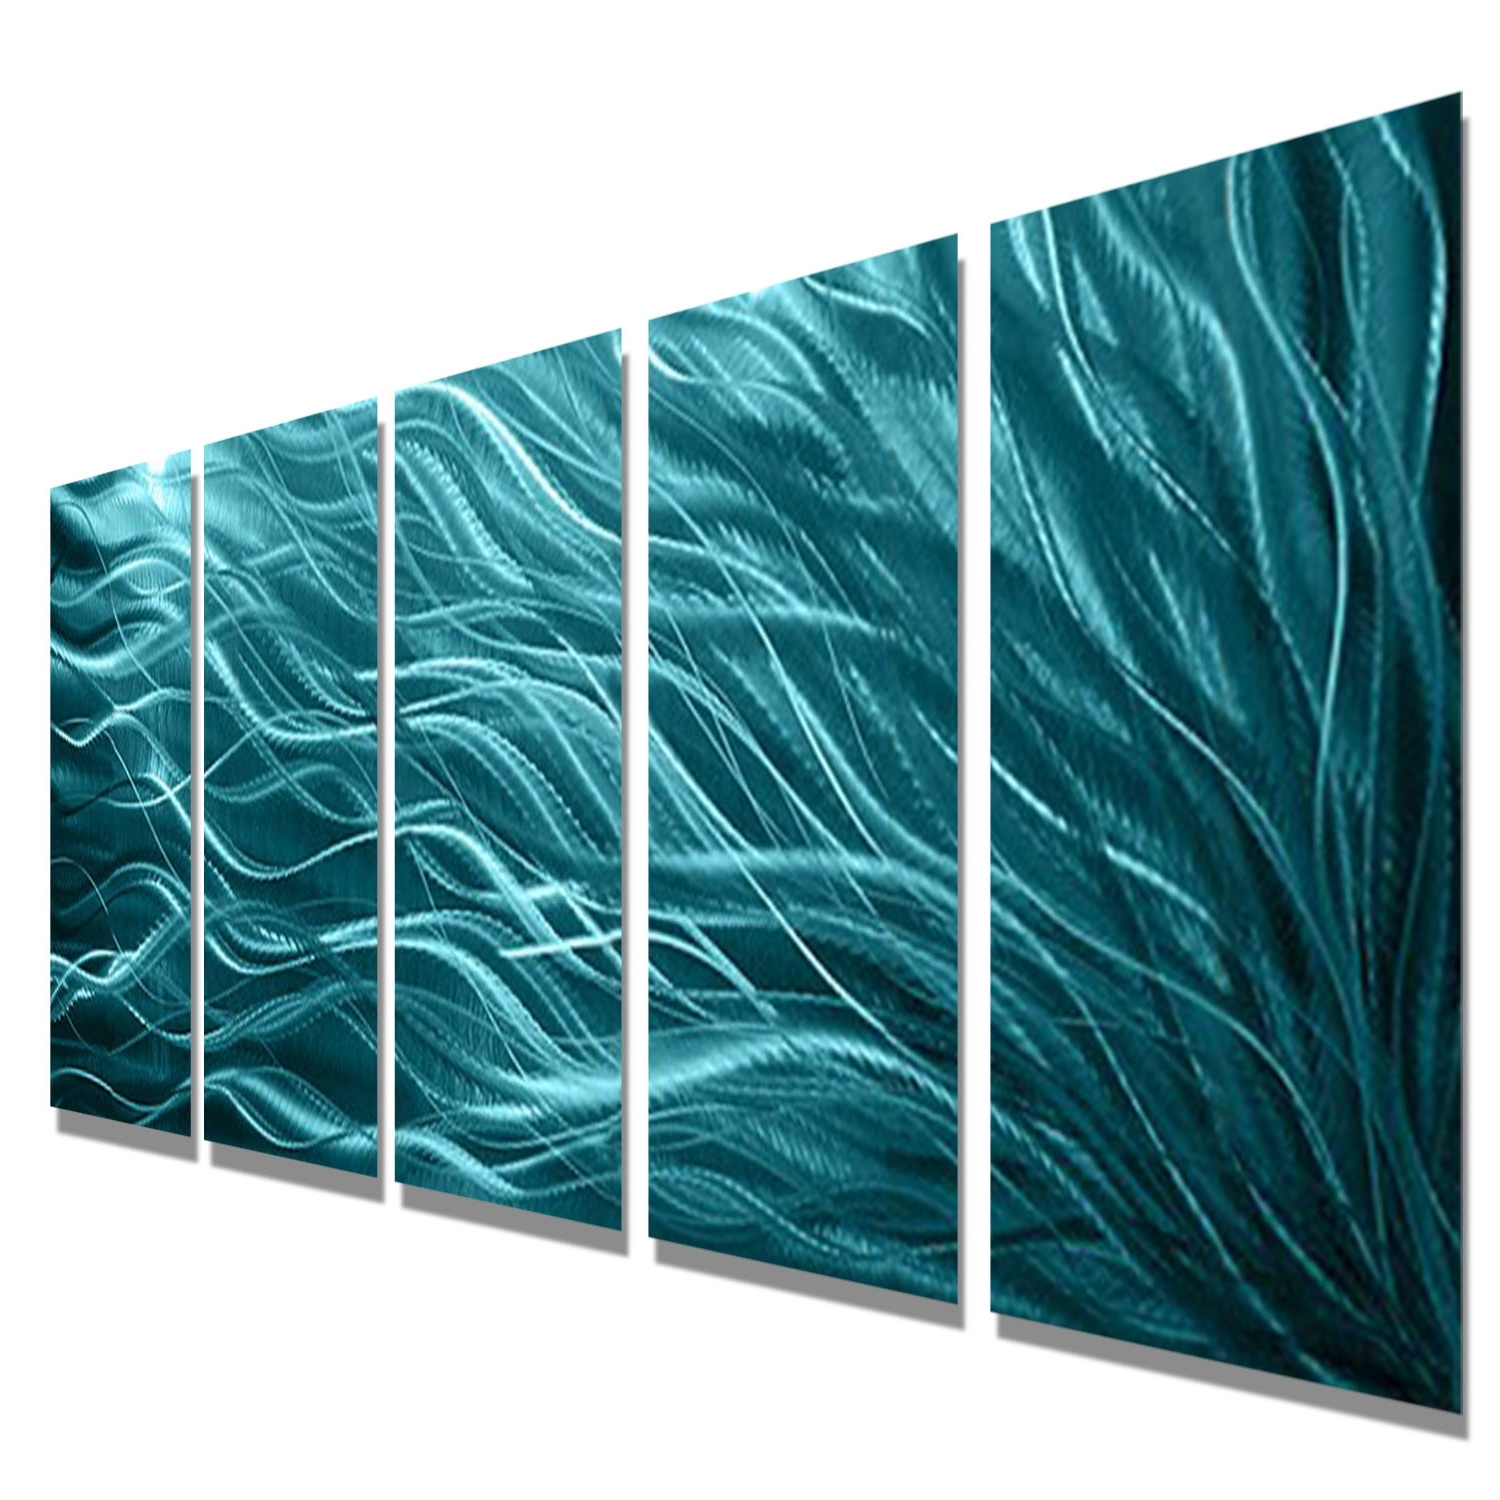 Aqua Sea Grass – Aqua Blue Metal Wall Art – 5 Panel Wall Décor With Popular Sea Glass Wall Art (View 15 of 15)